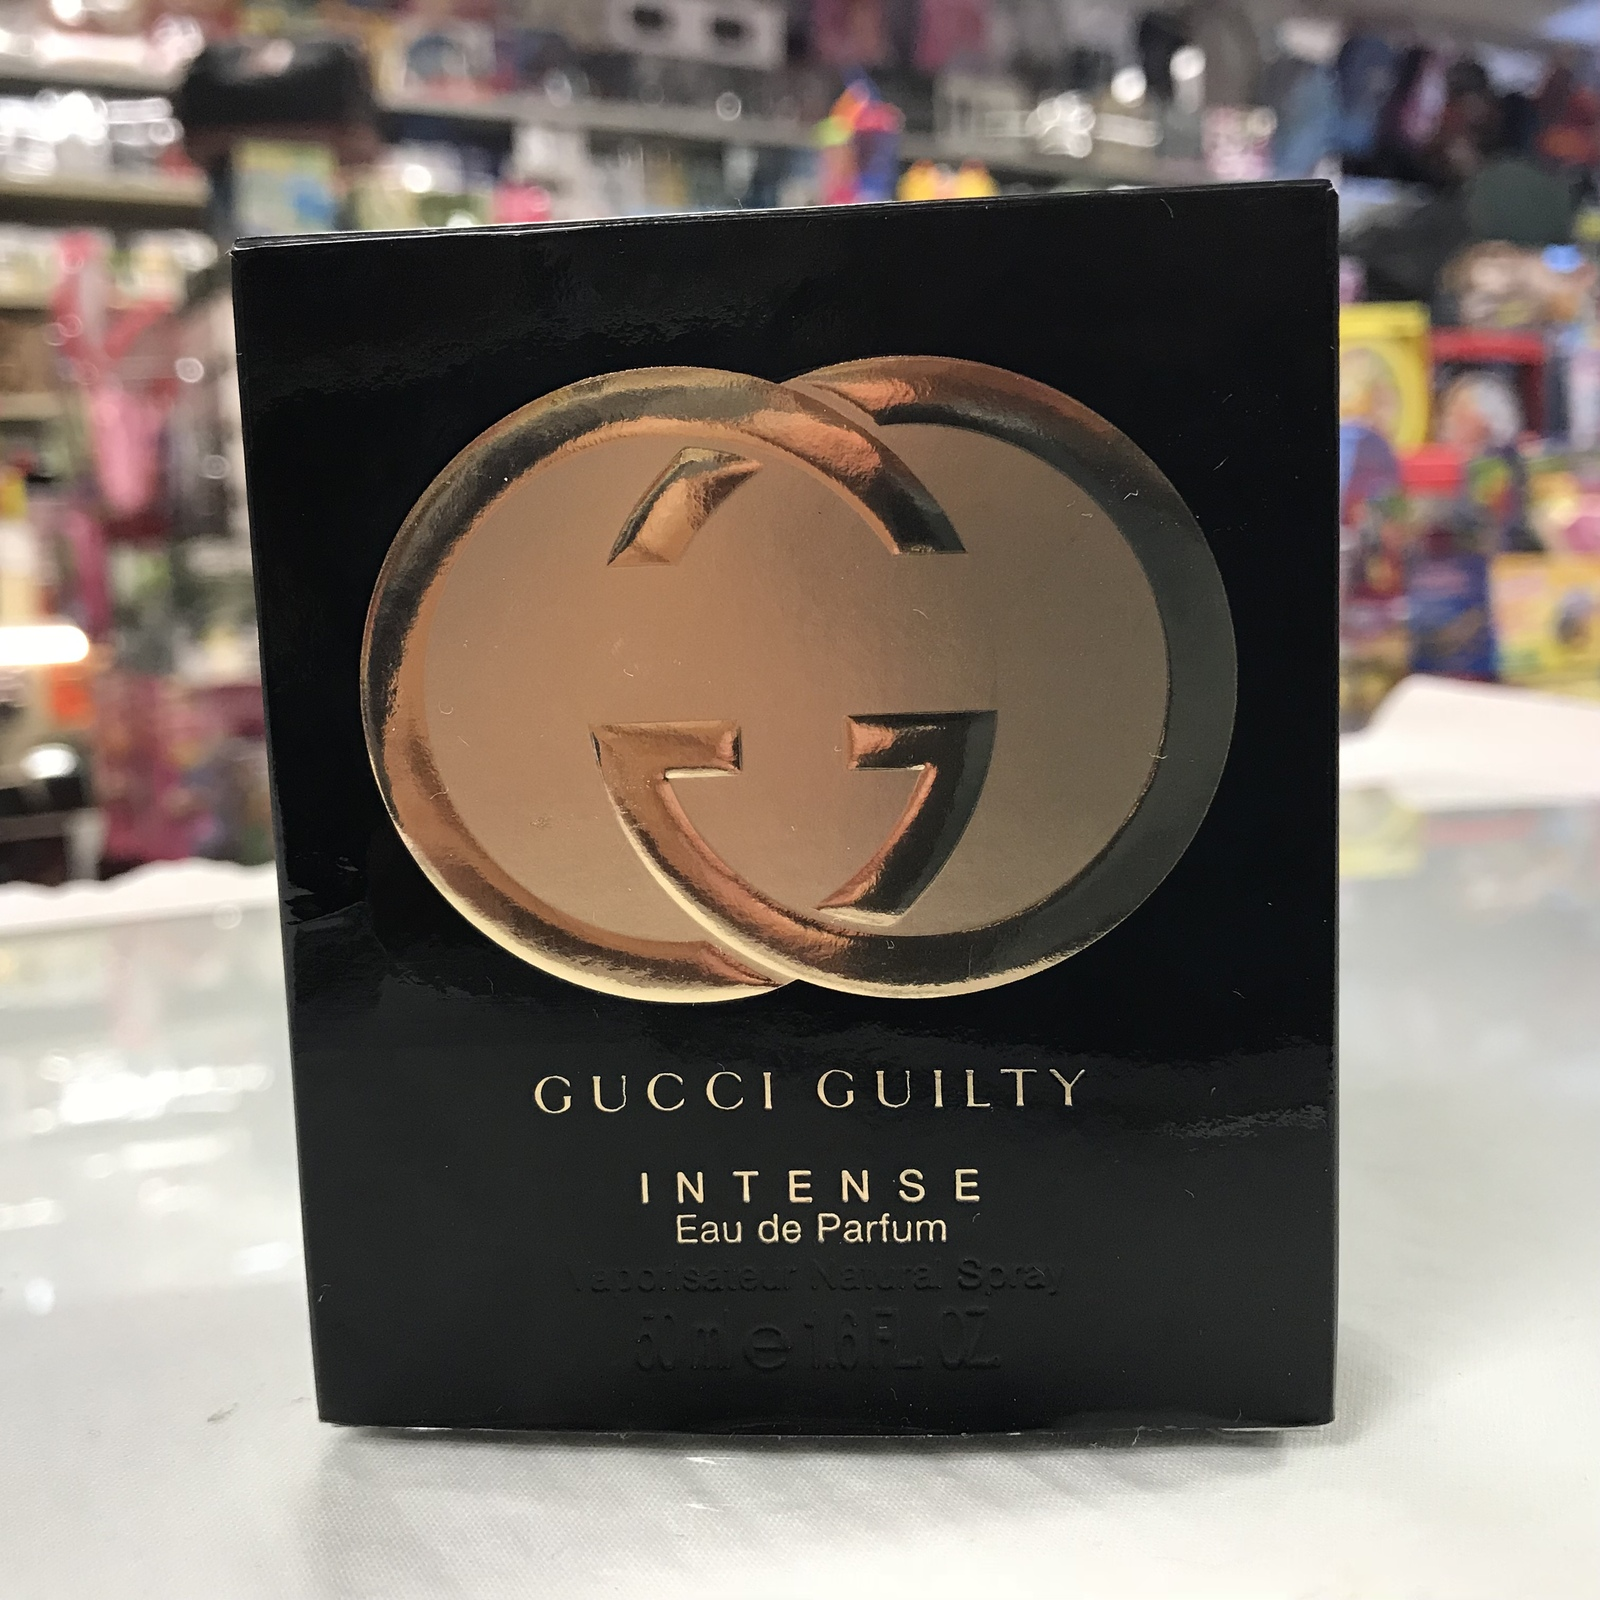 Gucci Guilty Intense By For Woman 16 And 48 Similar Items Parfum Gxxci Floz 50 Ml Eau De